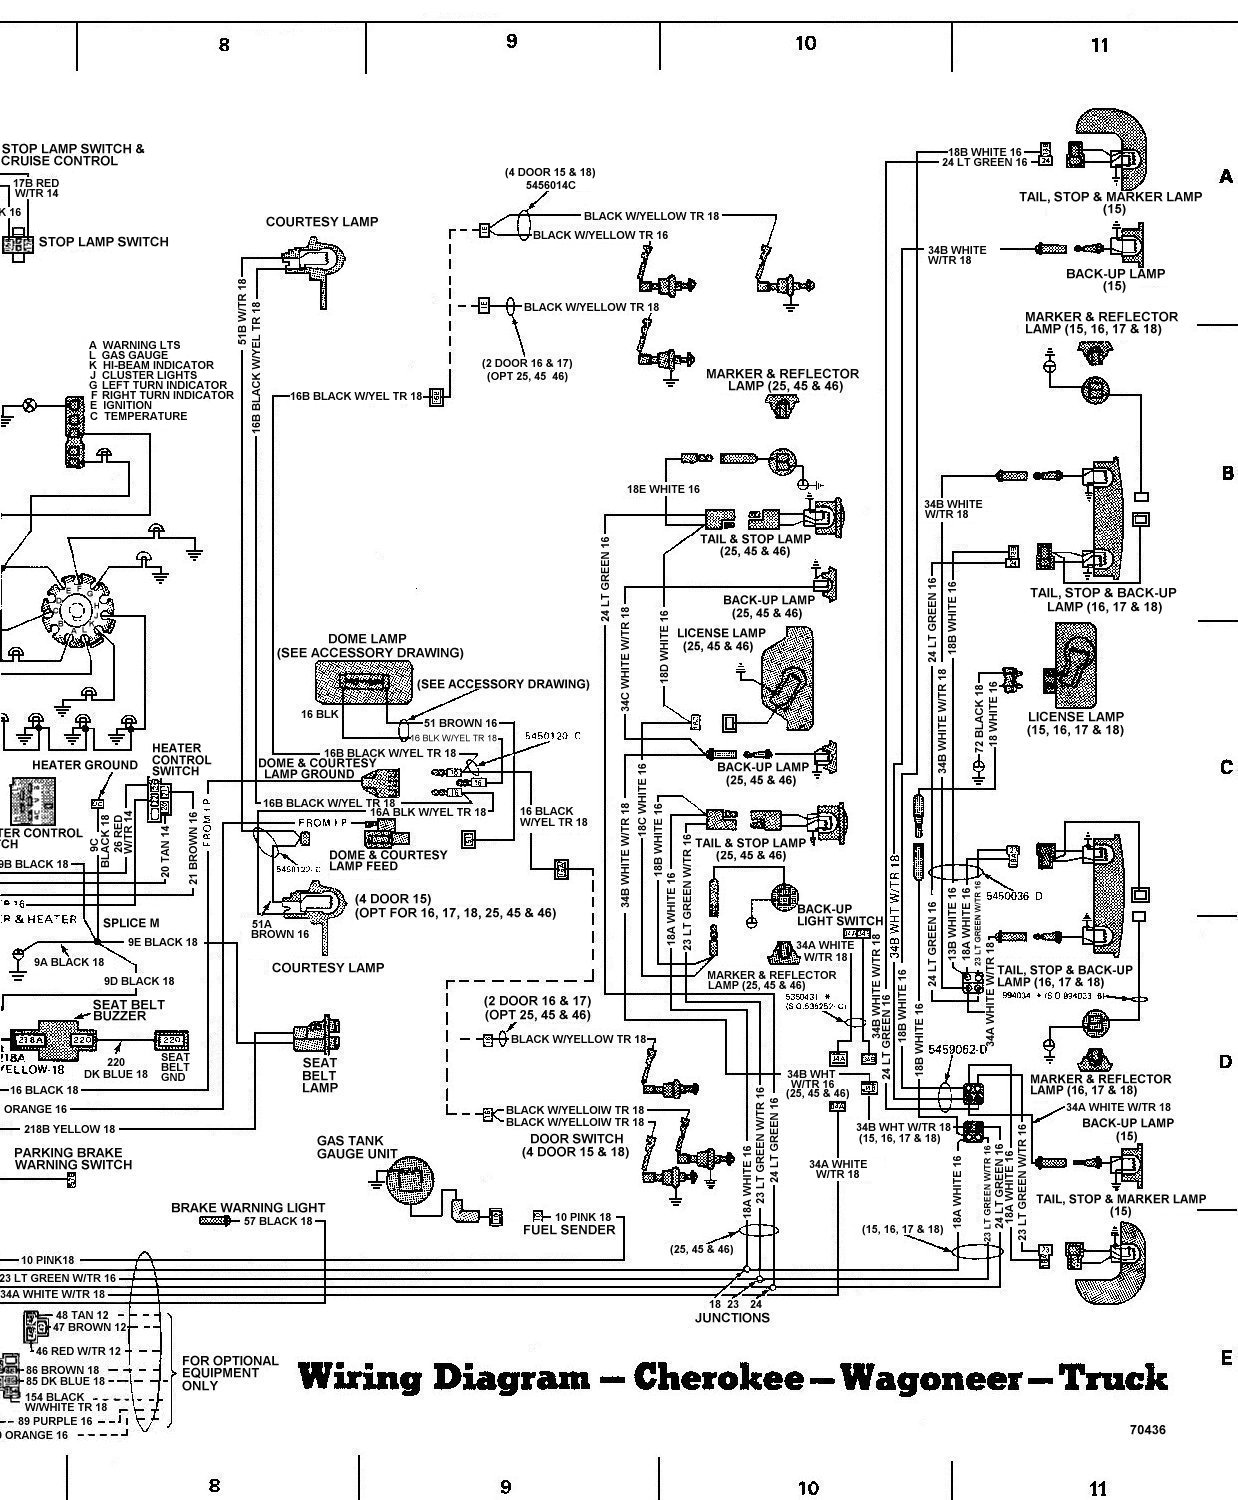 1999 Jeep Cherokee Wiring Diagram - Best Wiring Diagram 2017